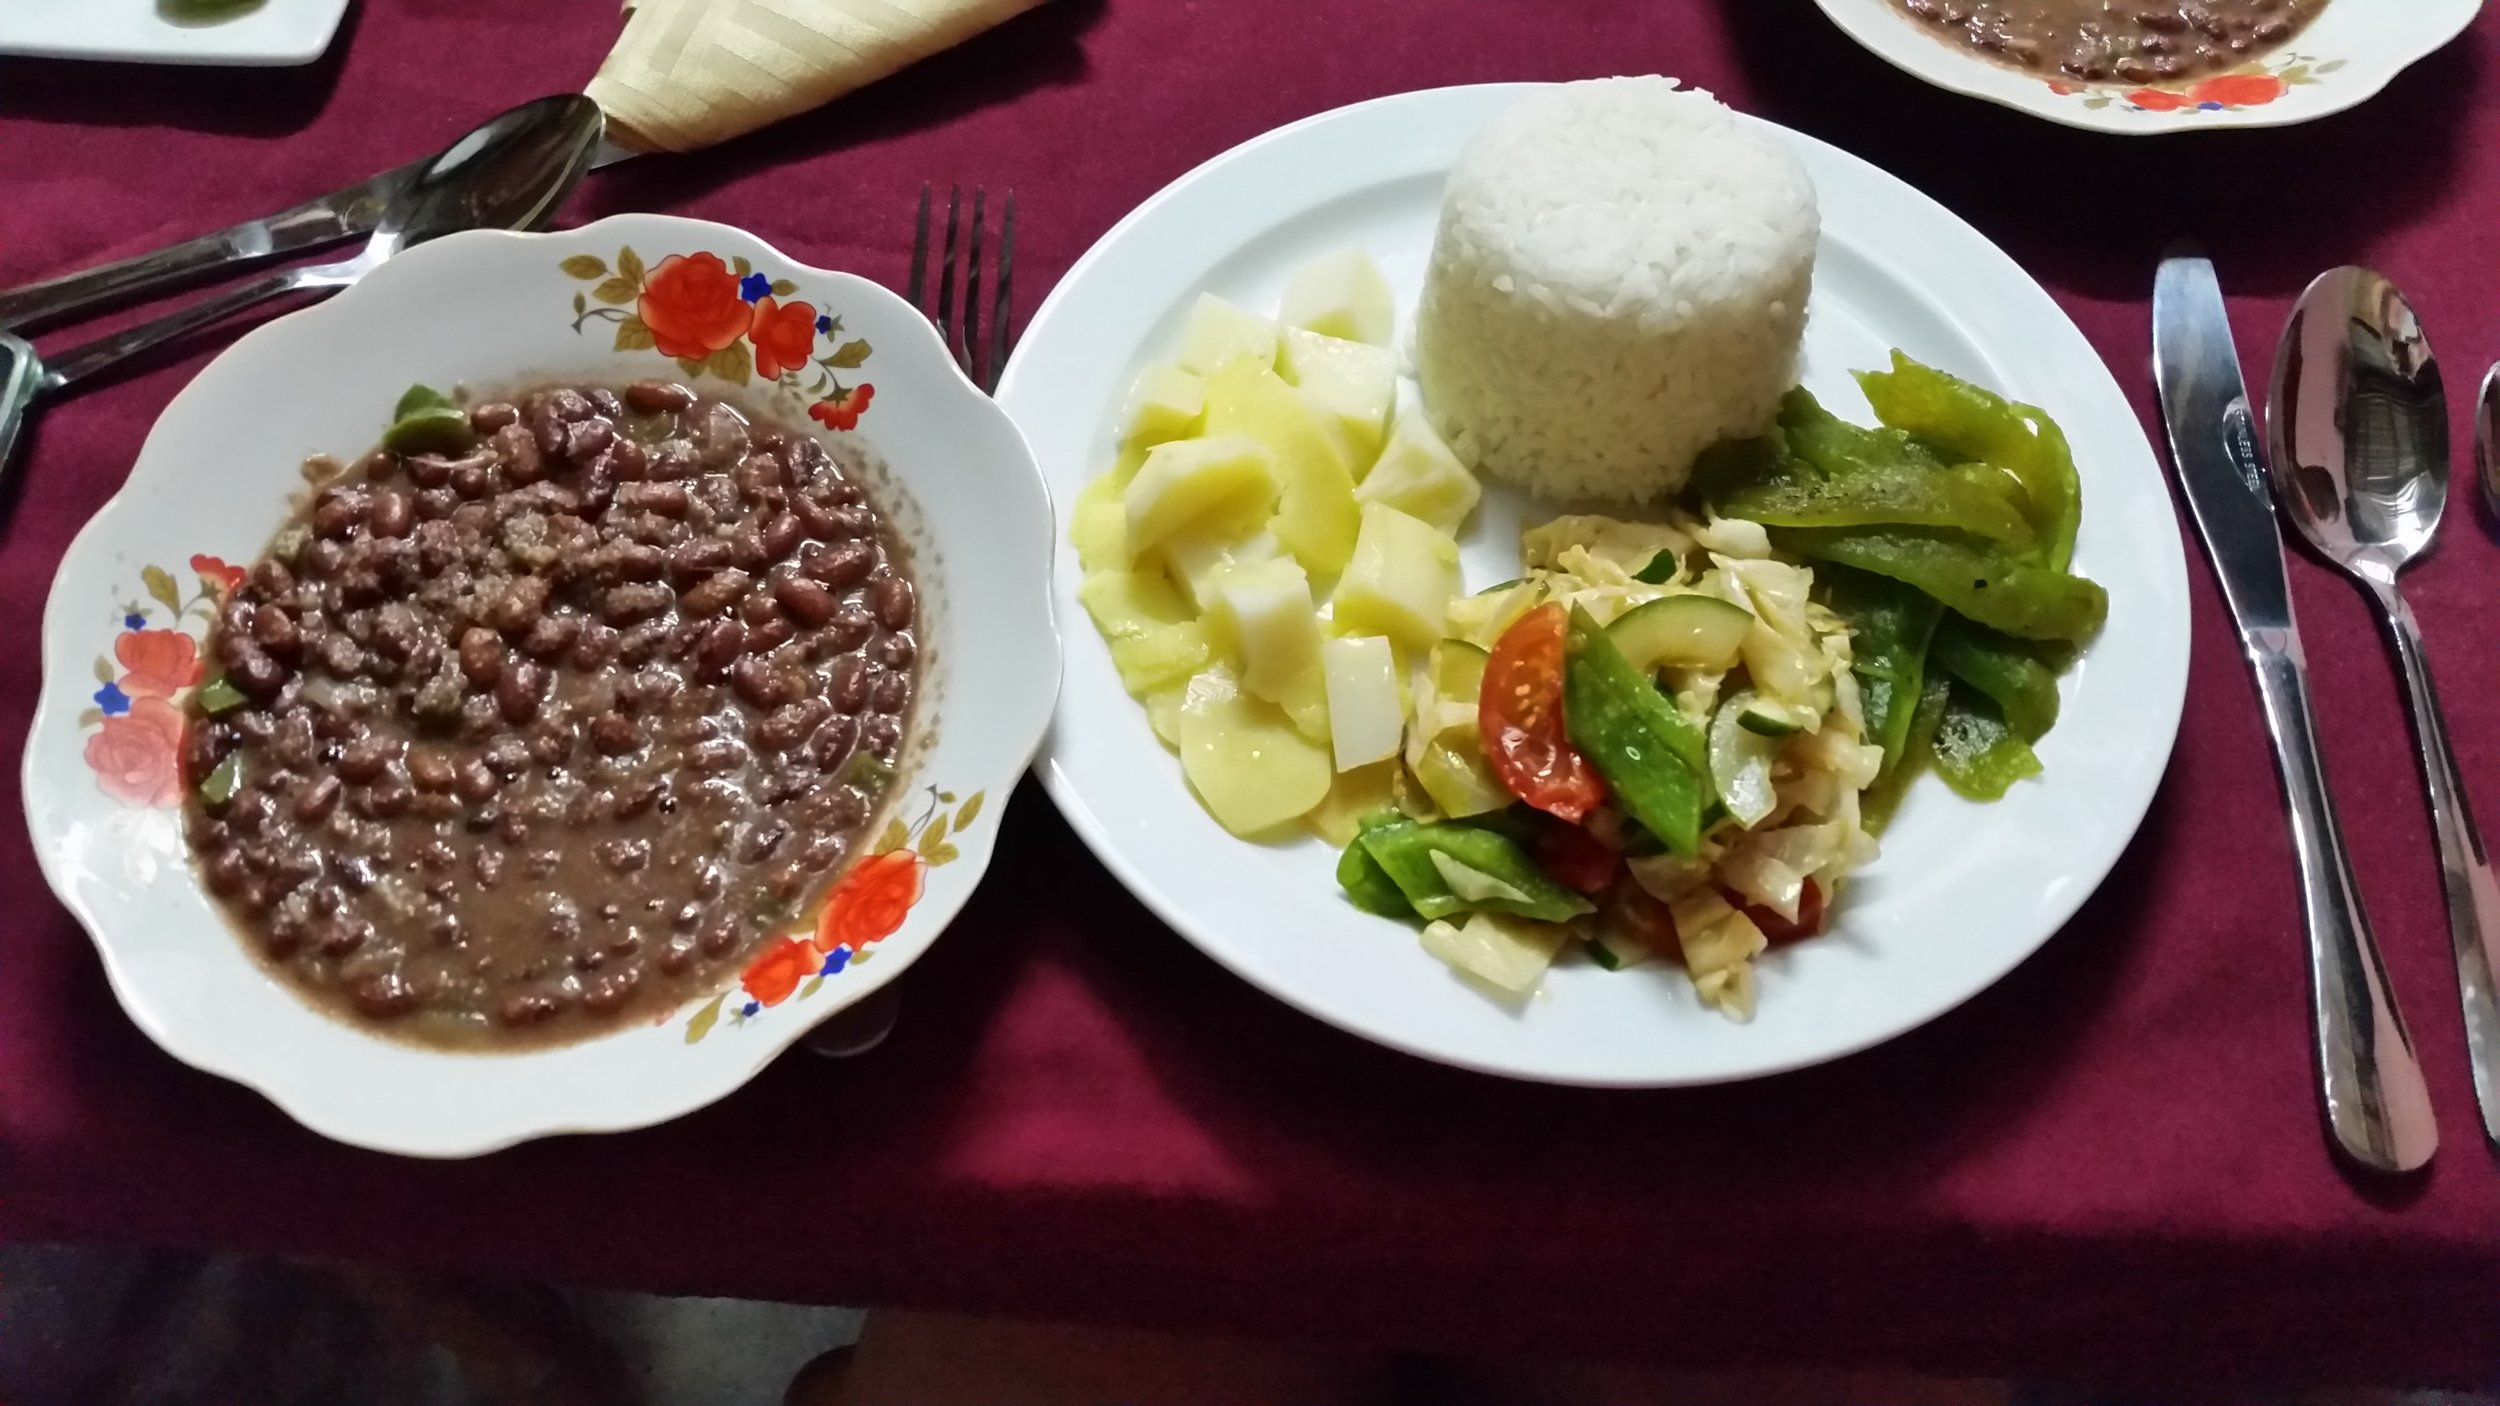 Dinner at a casa particular offers more variety